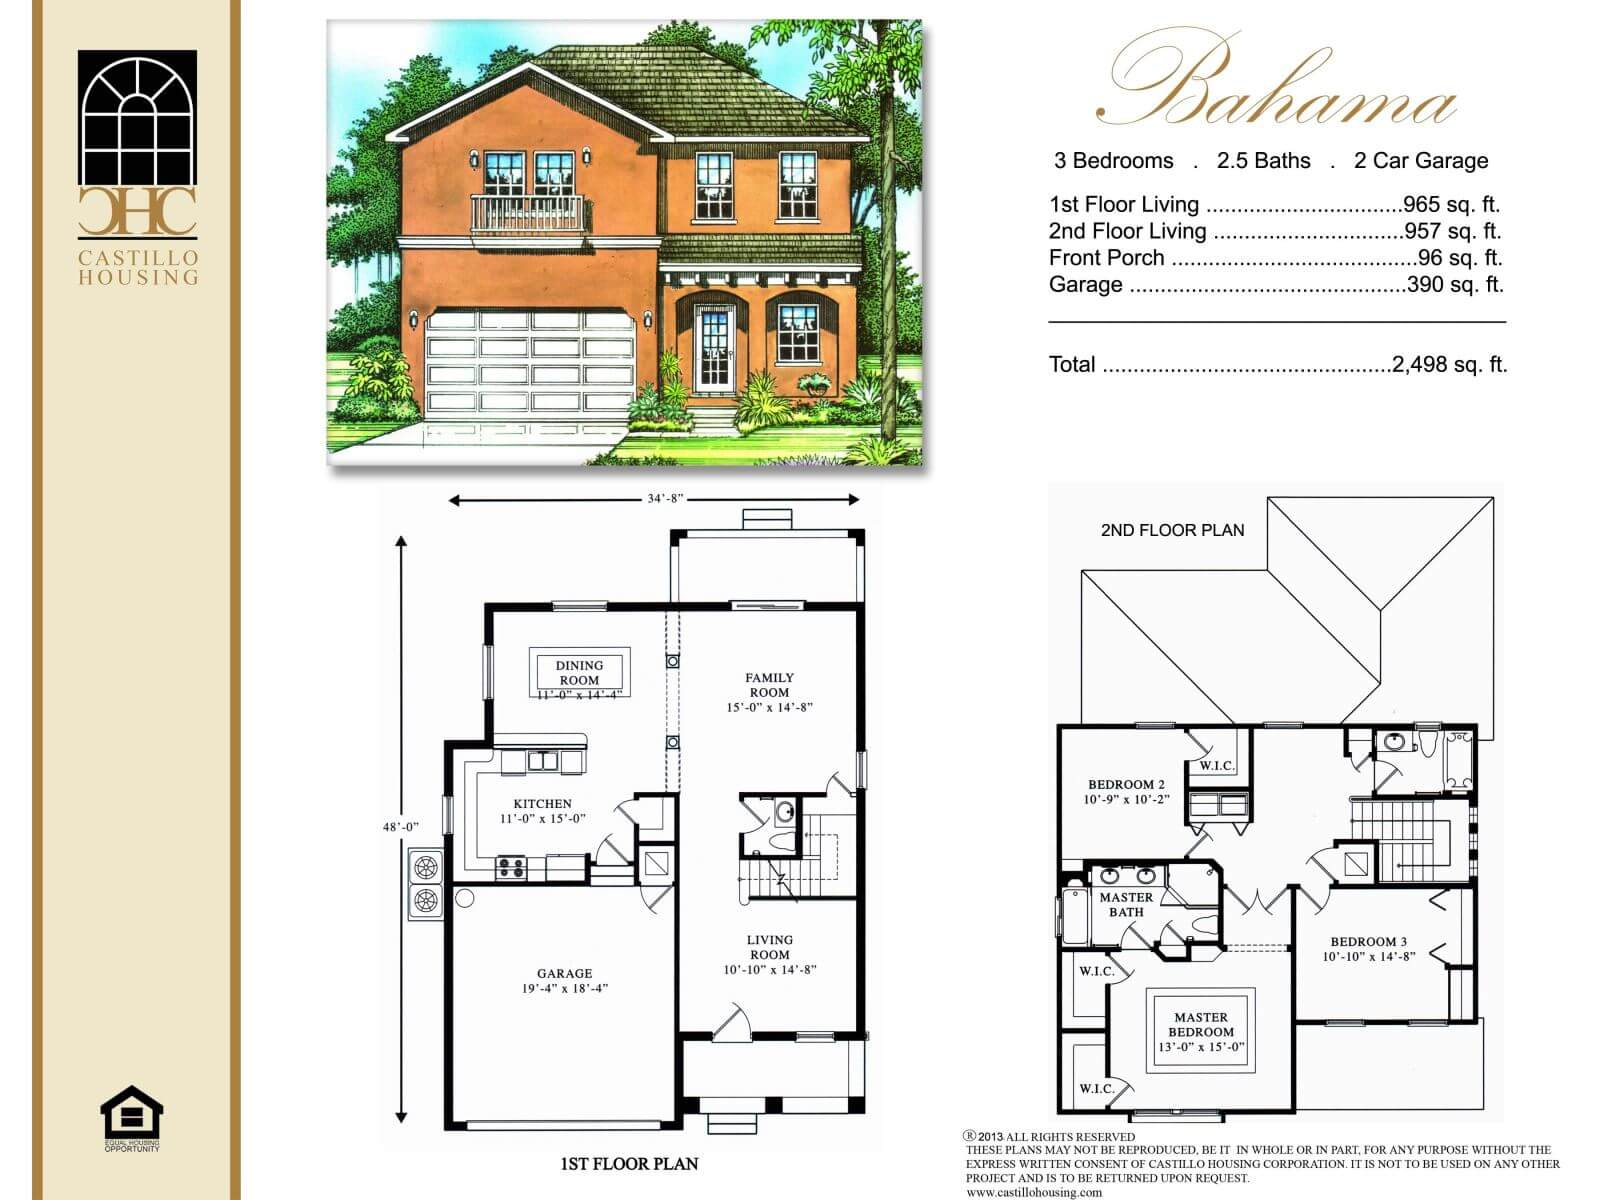 Floor Plans,1,001 SQ FT TO 2,000 SQ FT,1010